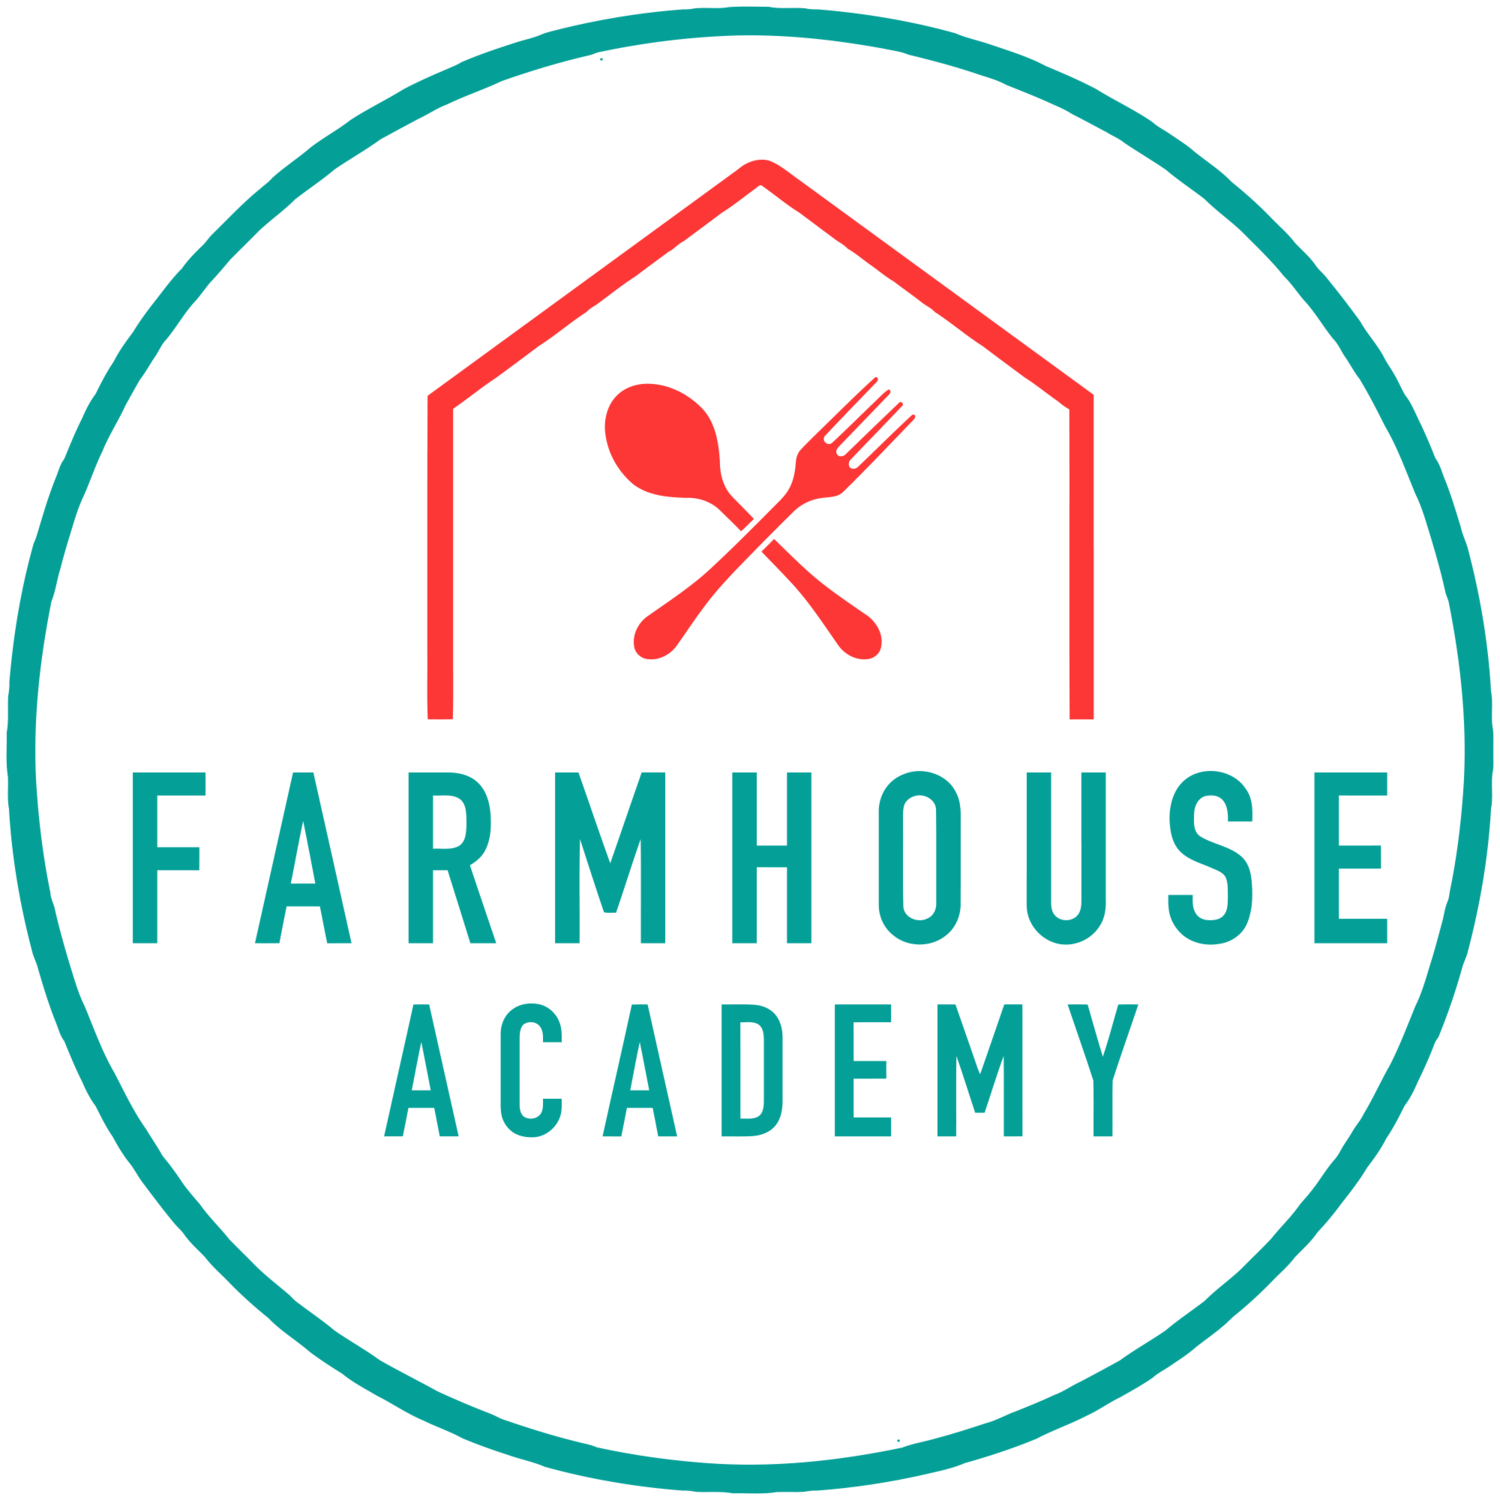 Farmhouse Academy